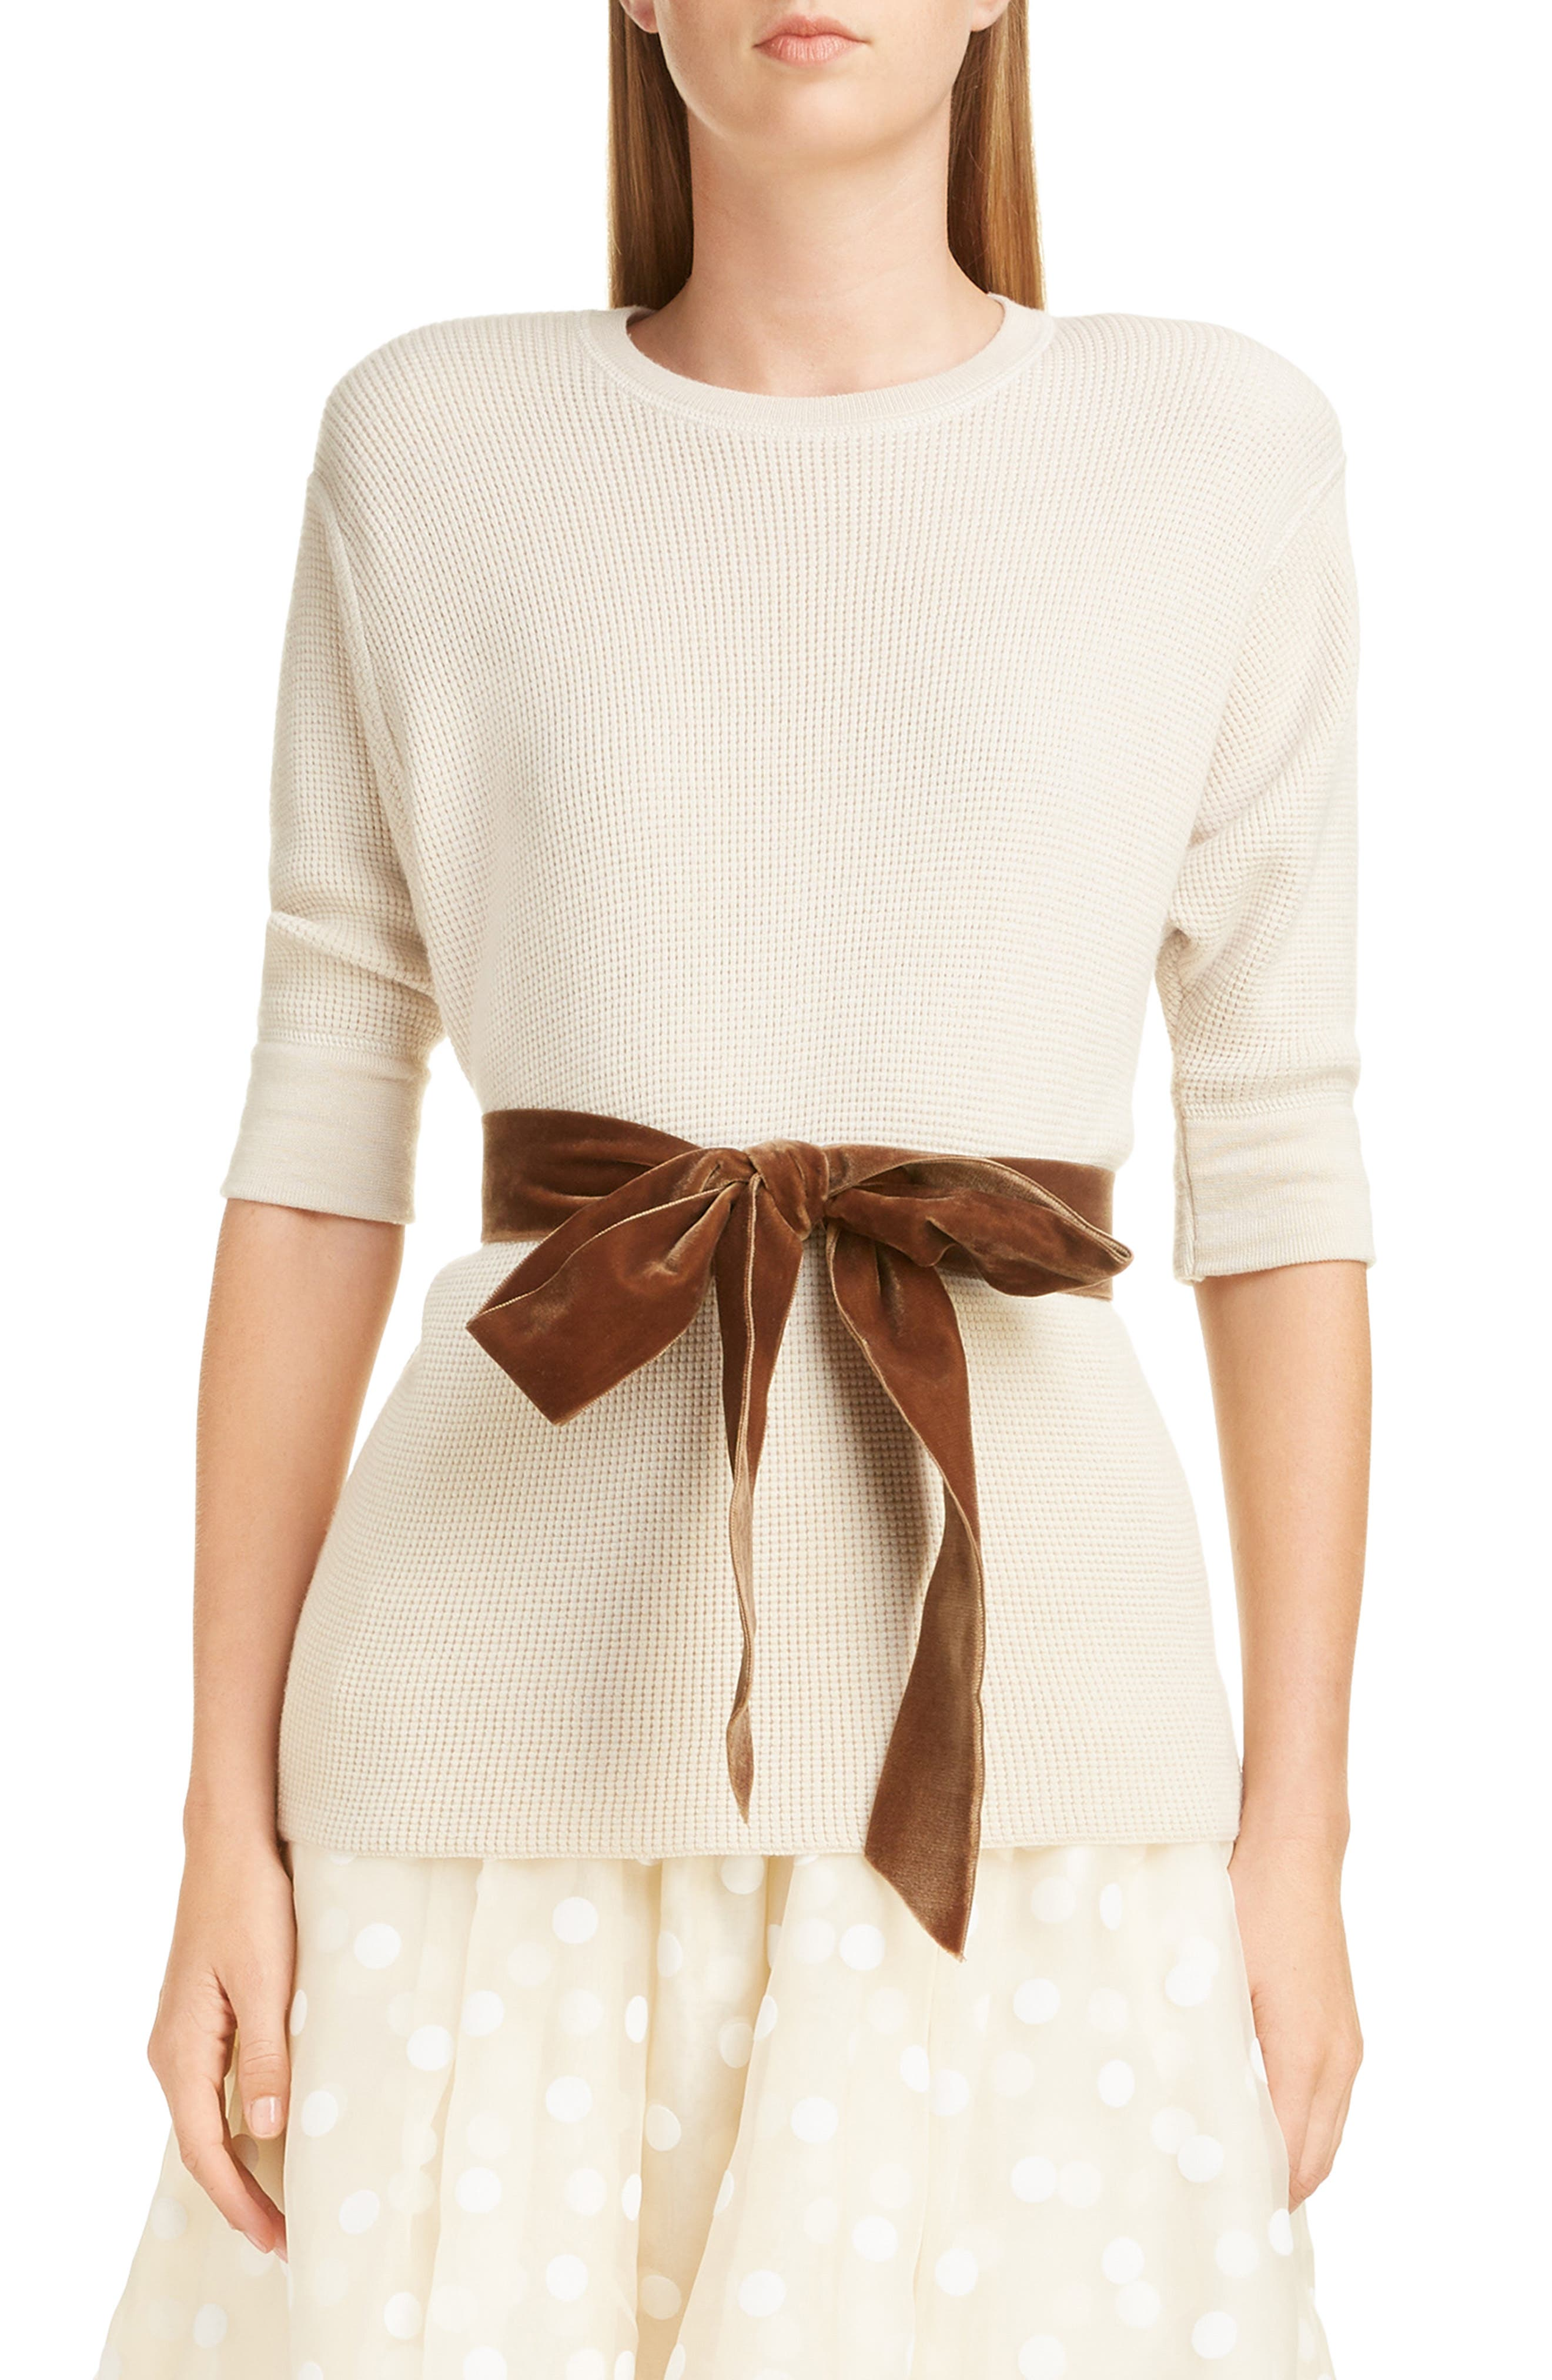 Bow Detail Cashmere & Wool Blend Thermal Sweater, Main, color, IVORY